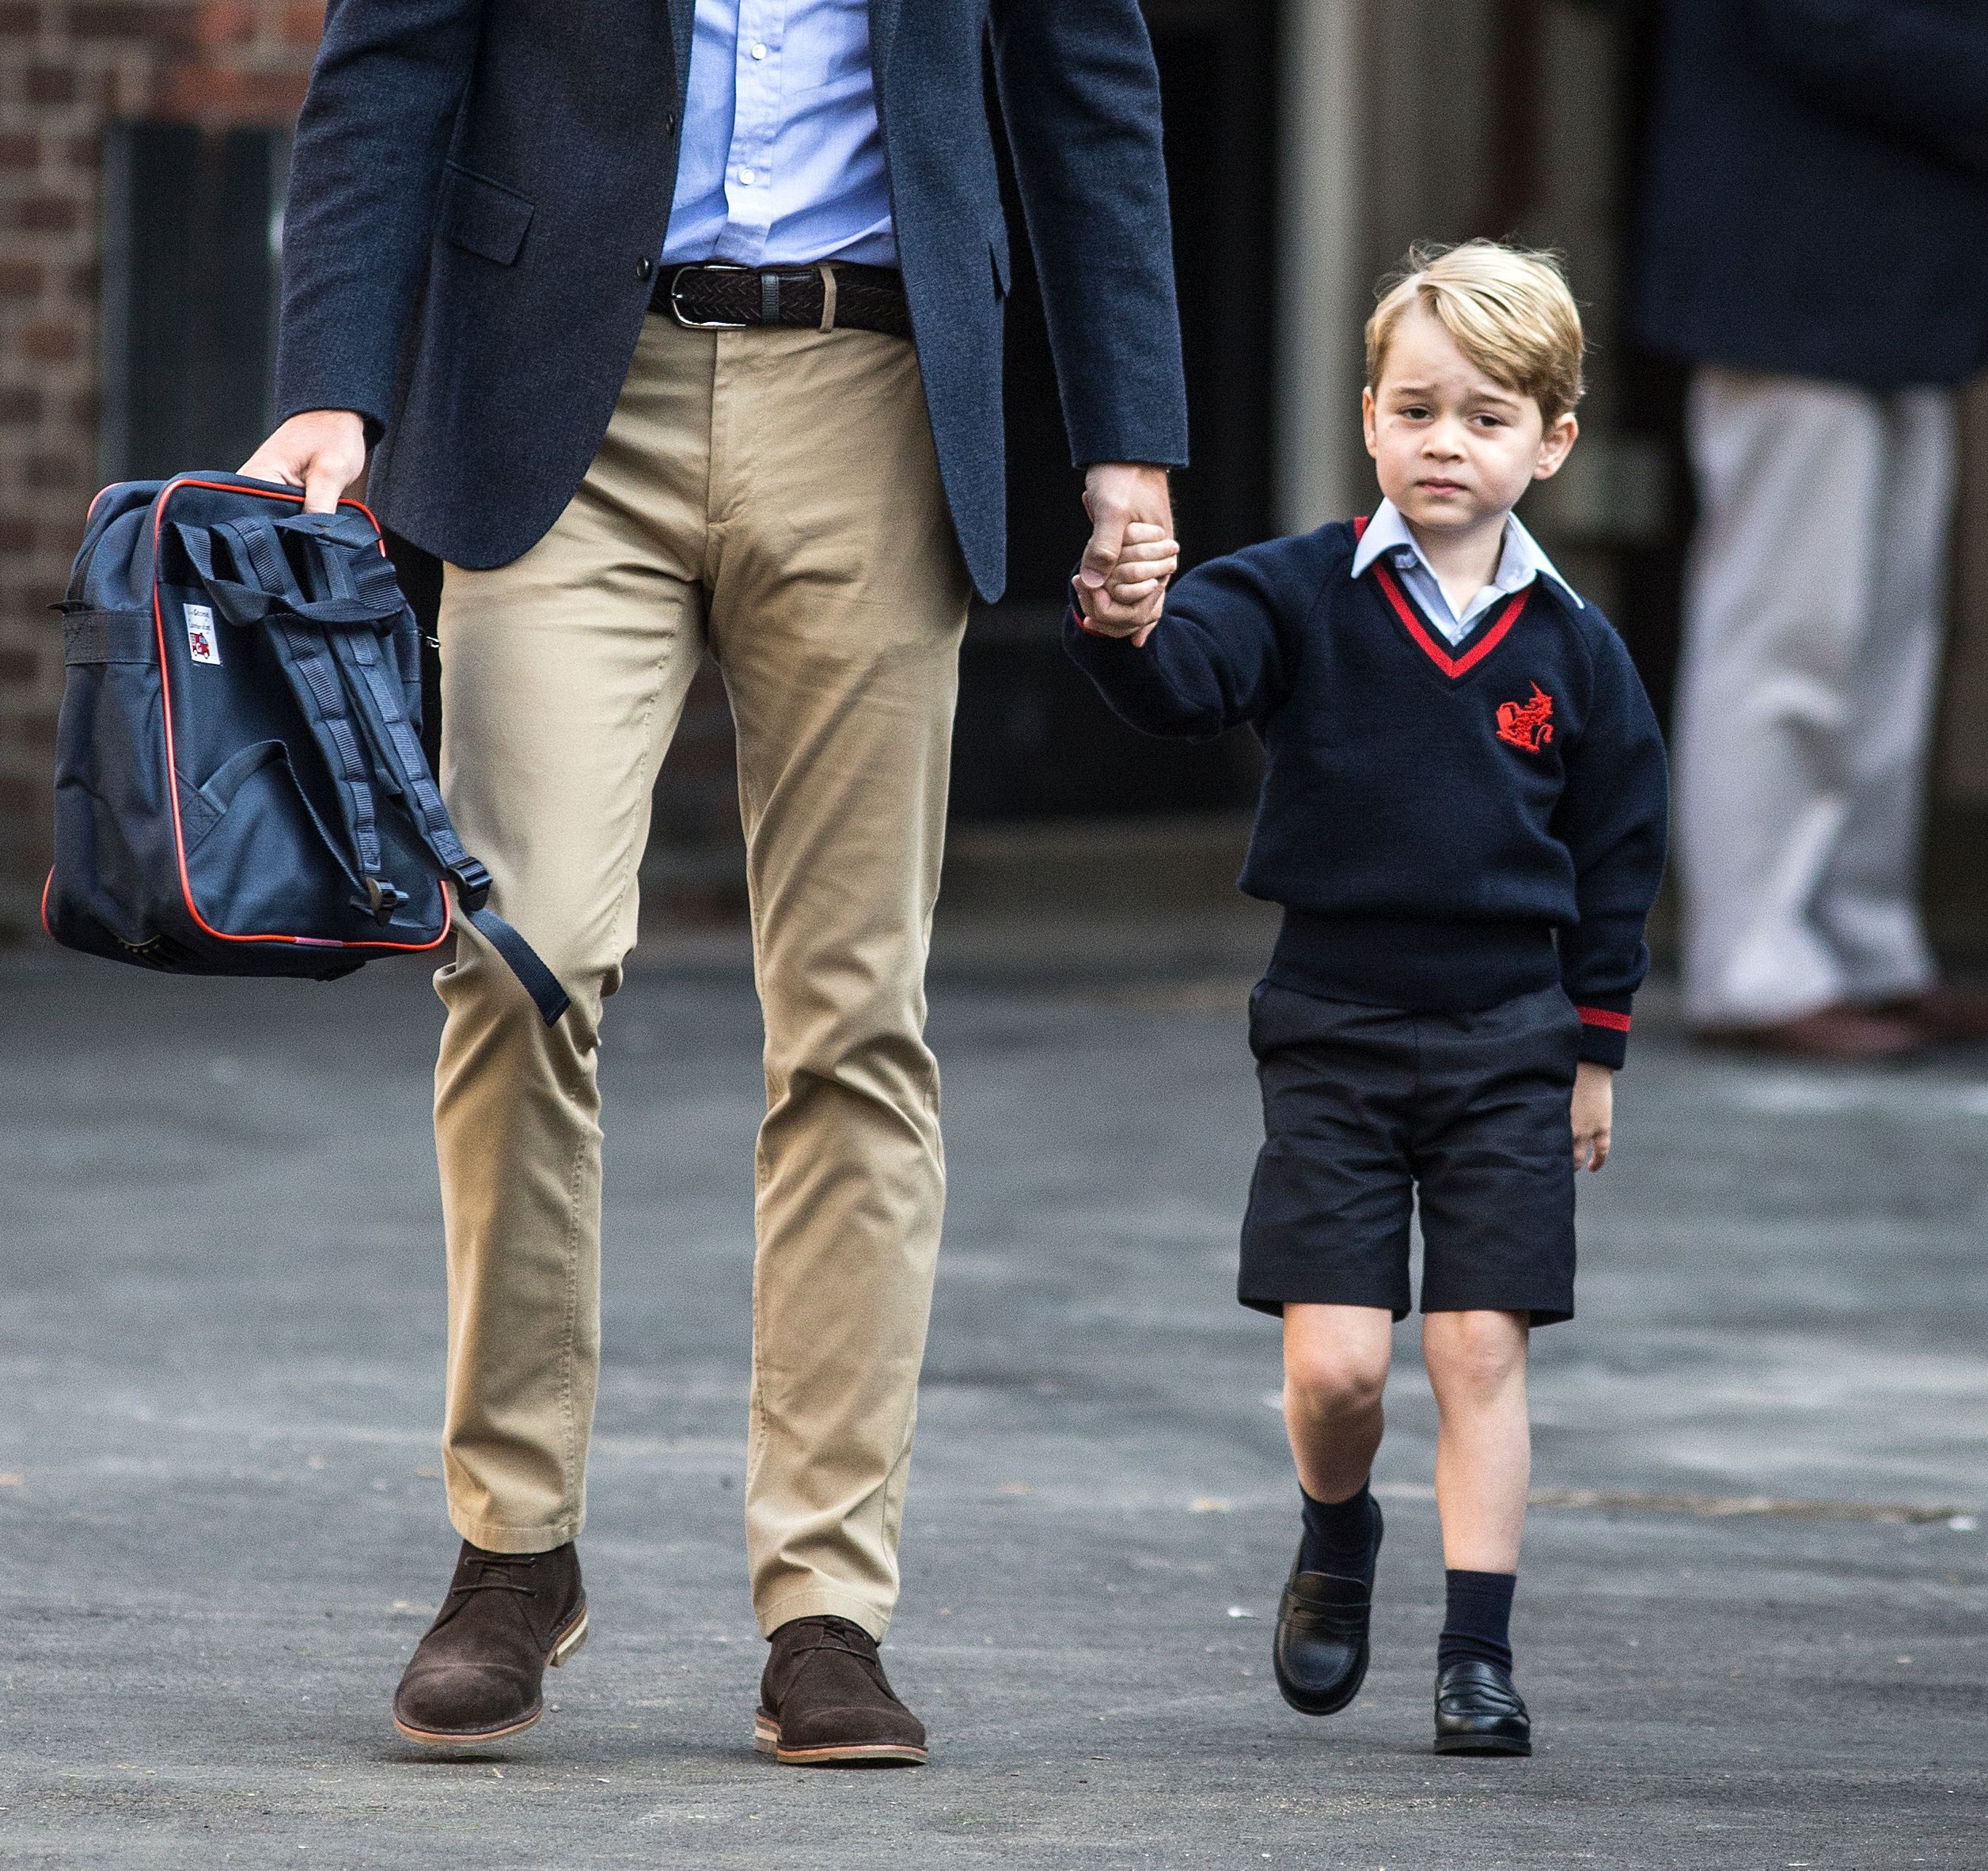 Britain's Prince George accompanied by Britain's Prince William, Duke of Cambridge arrives for his first day of school at Thomas's school on September 7, 2017 in southwest London. /